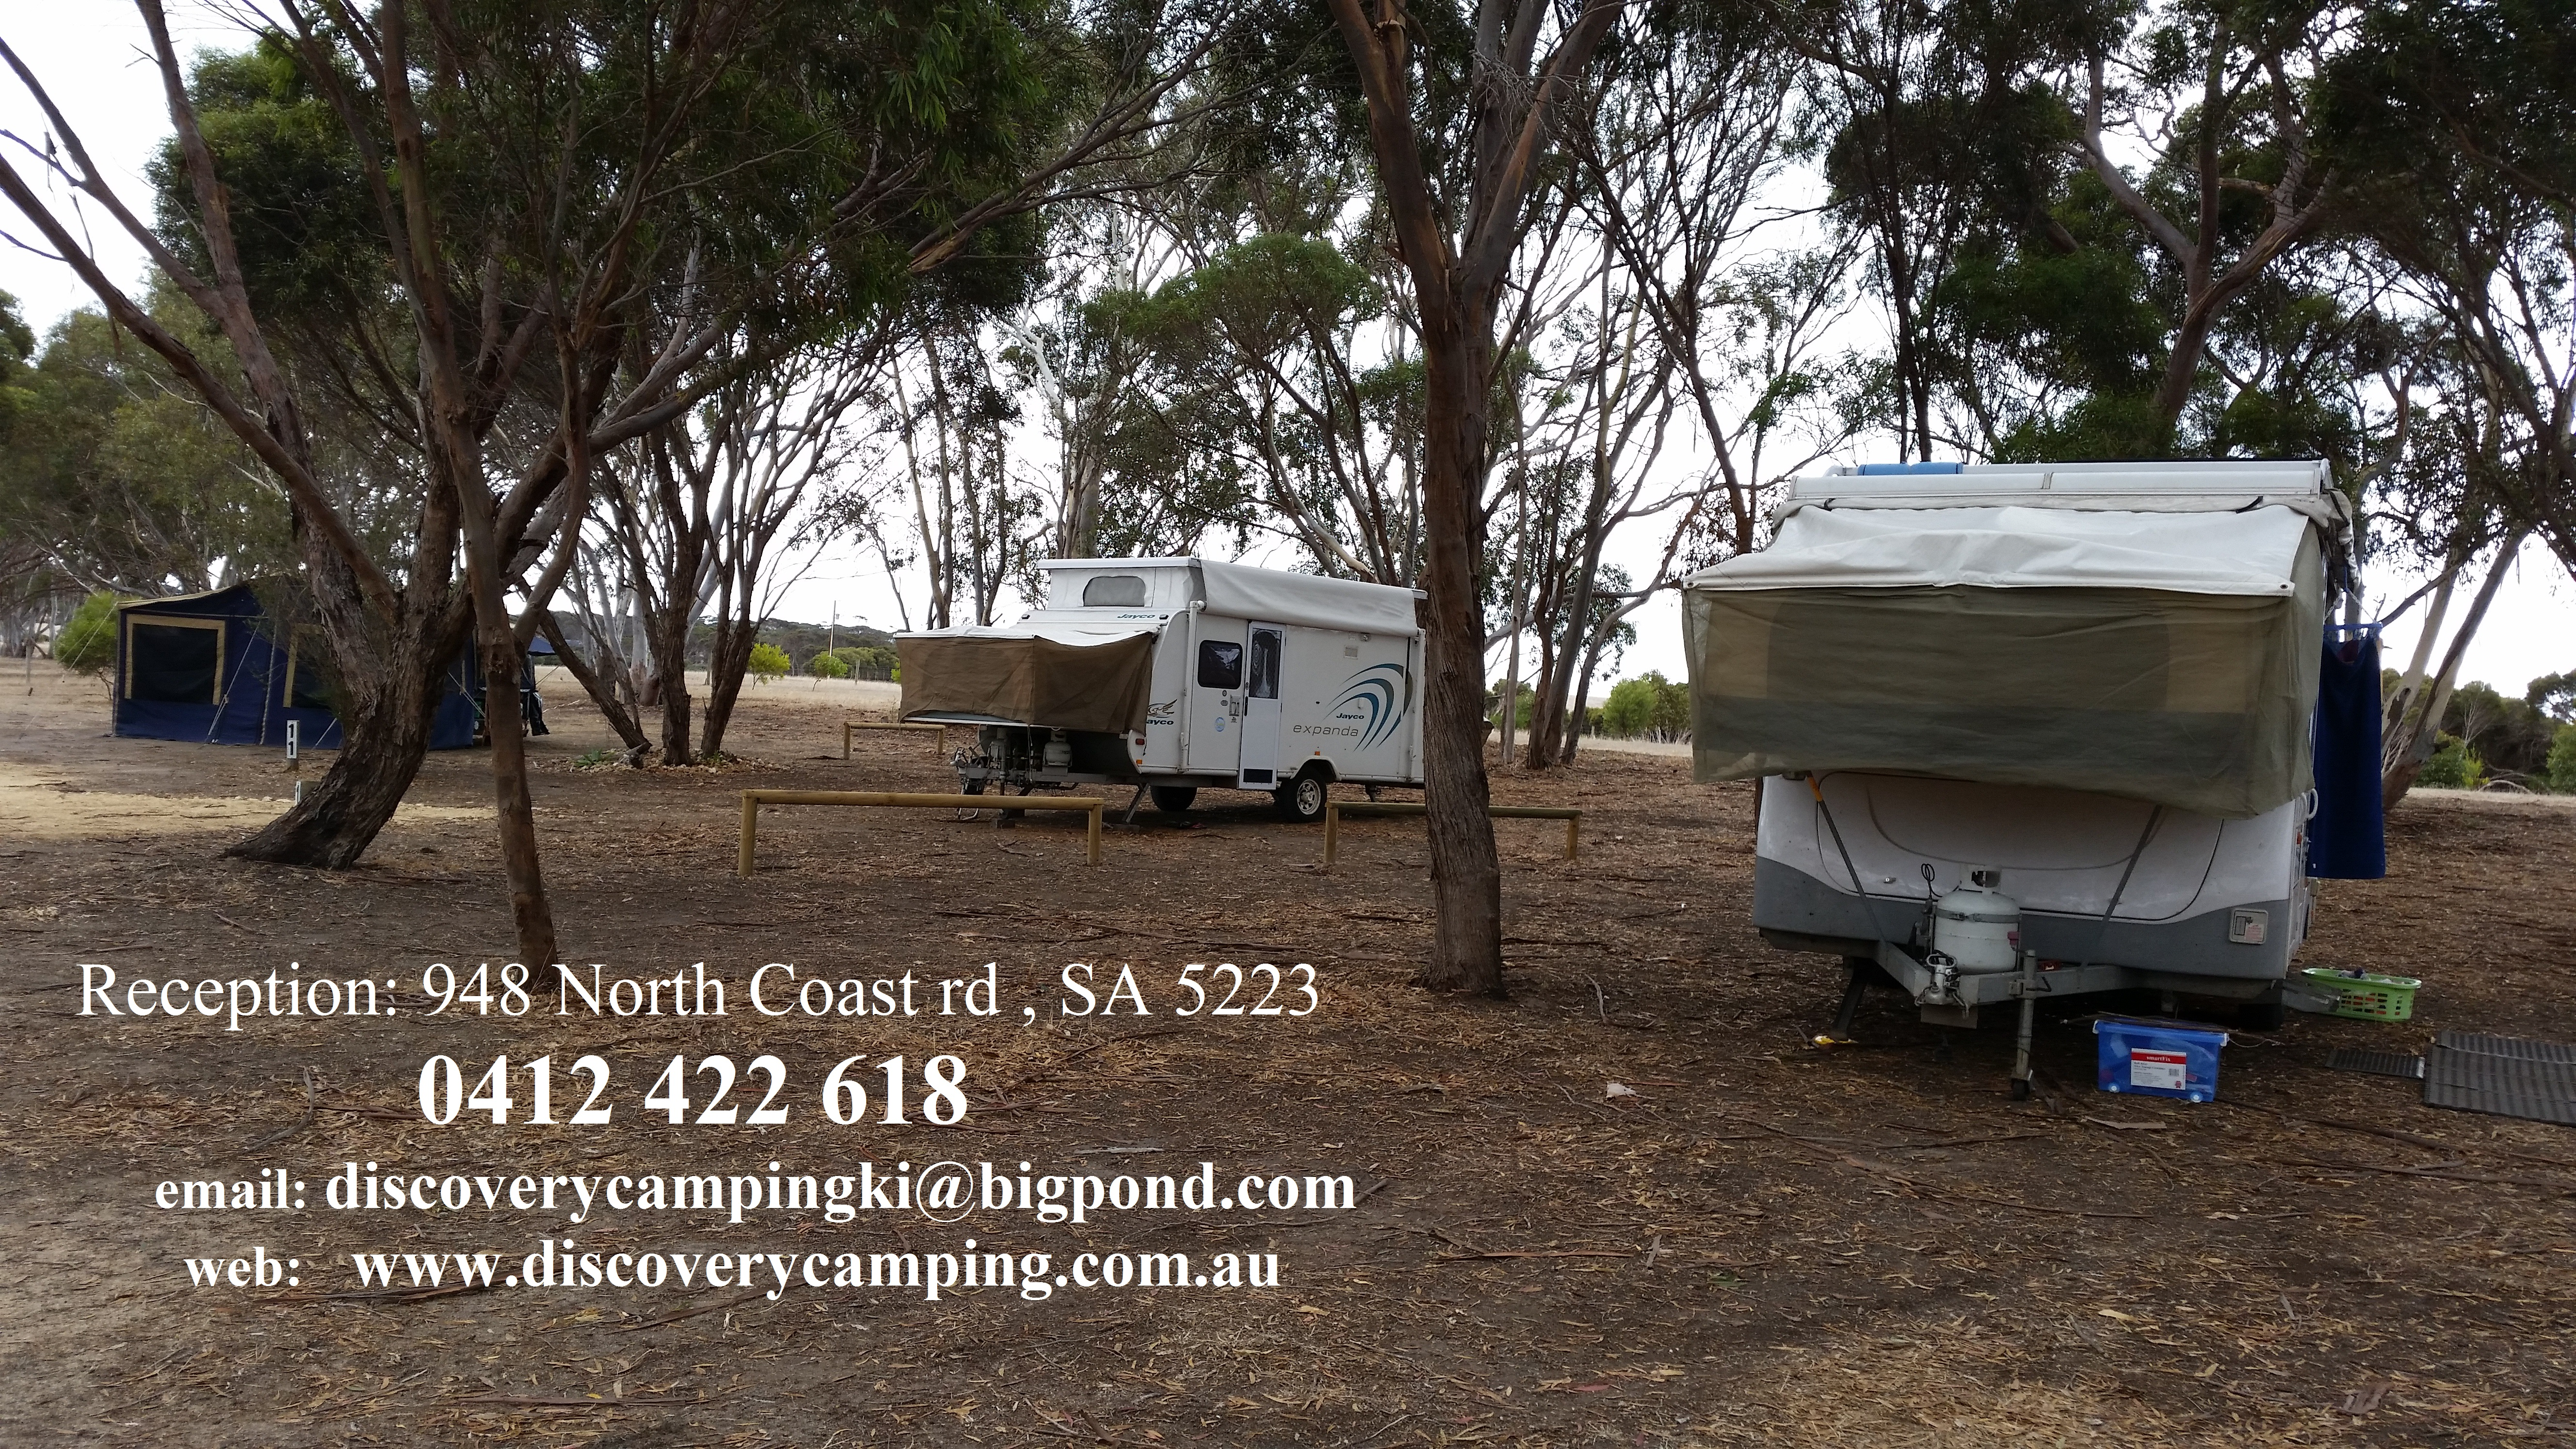 Discovery Lagoon  Caravan  Camping Grounds - Surfers Paradise Gold Coast